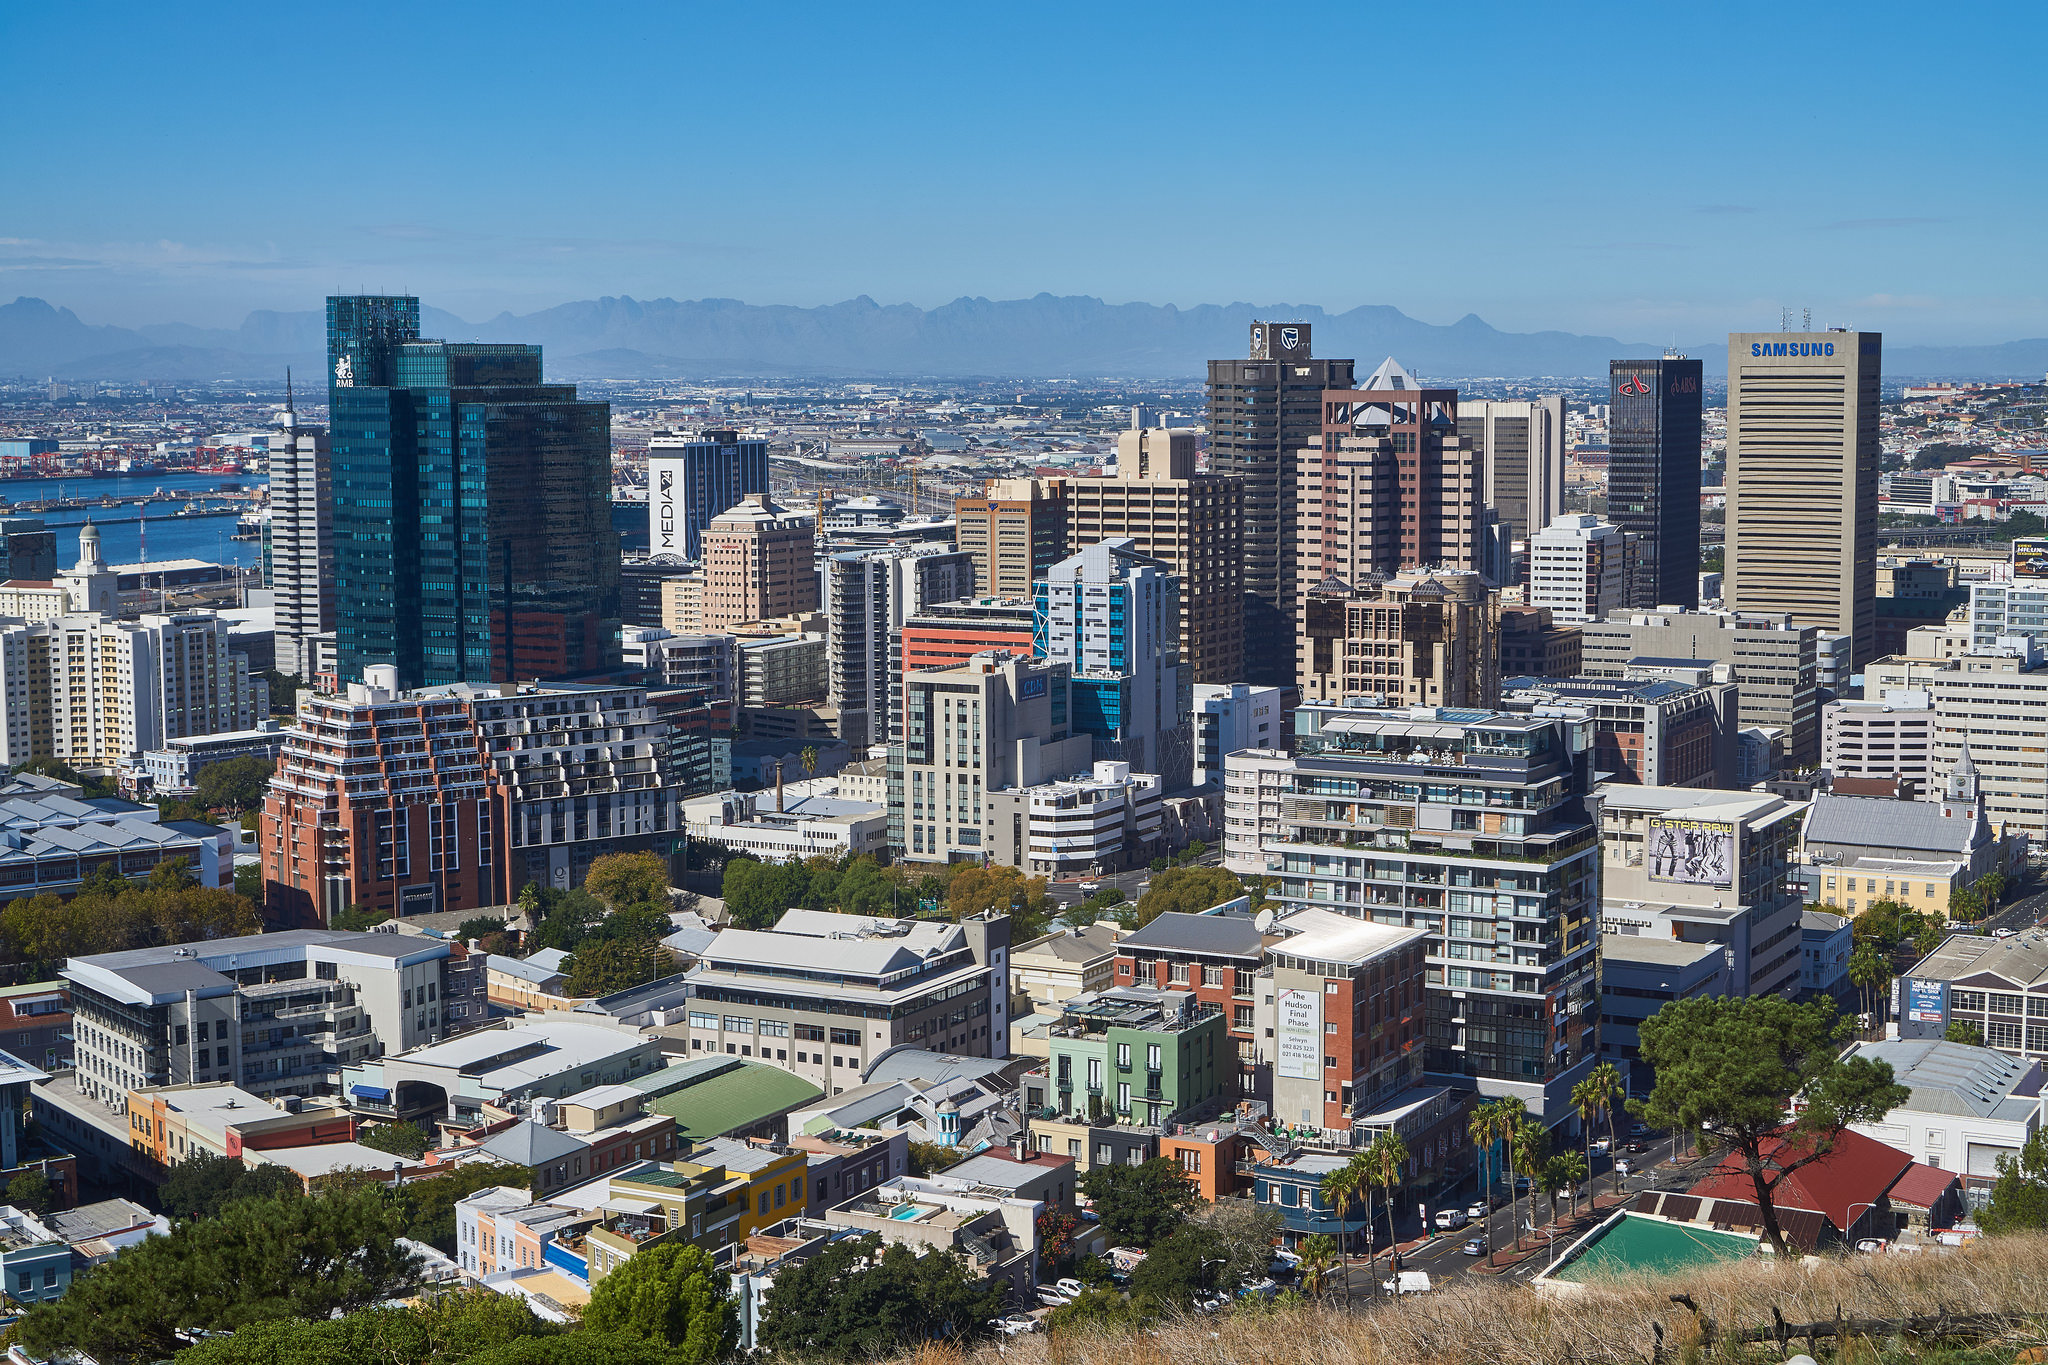 Cape Town CBD, photograph with panoramic view of city center buildings by Jarrett Stewart